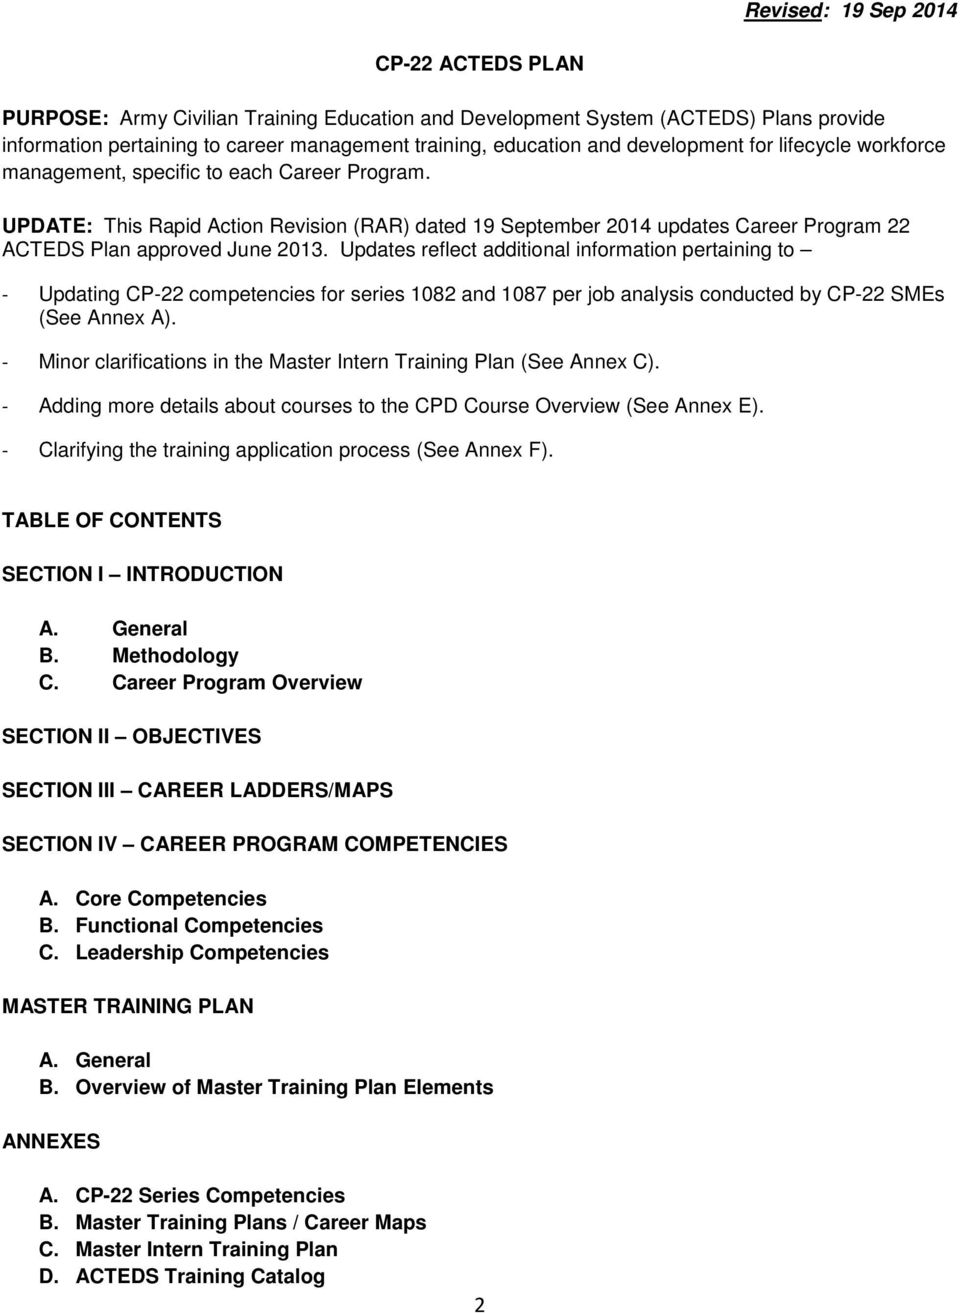 UPDATE: This Rapid Action Revision (RAR) dated 19 September 2014 updates Career Program 22 ACTEDS Plan approved June 2013.